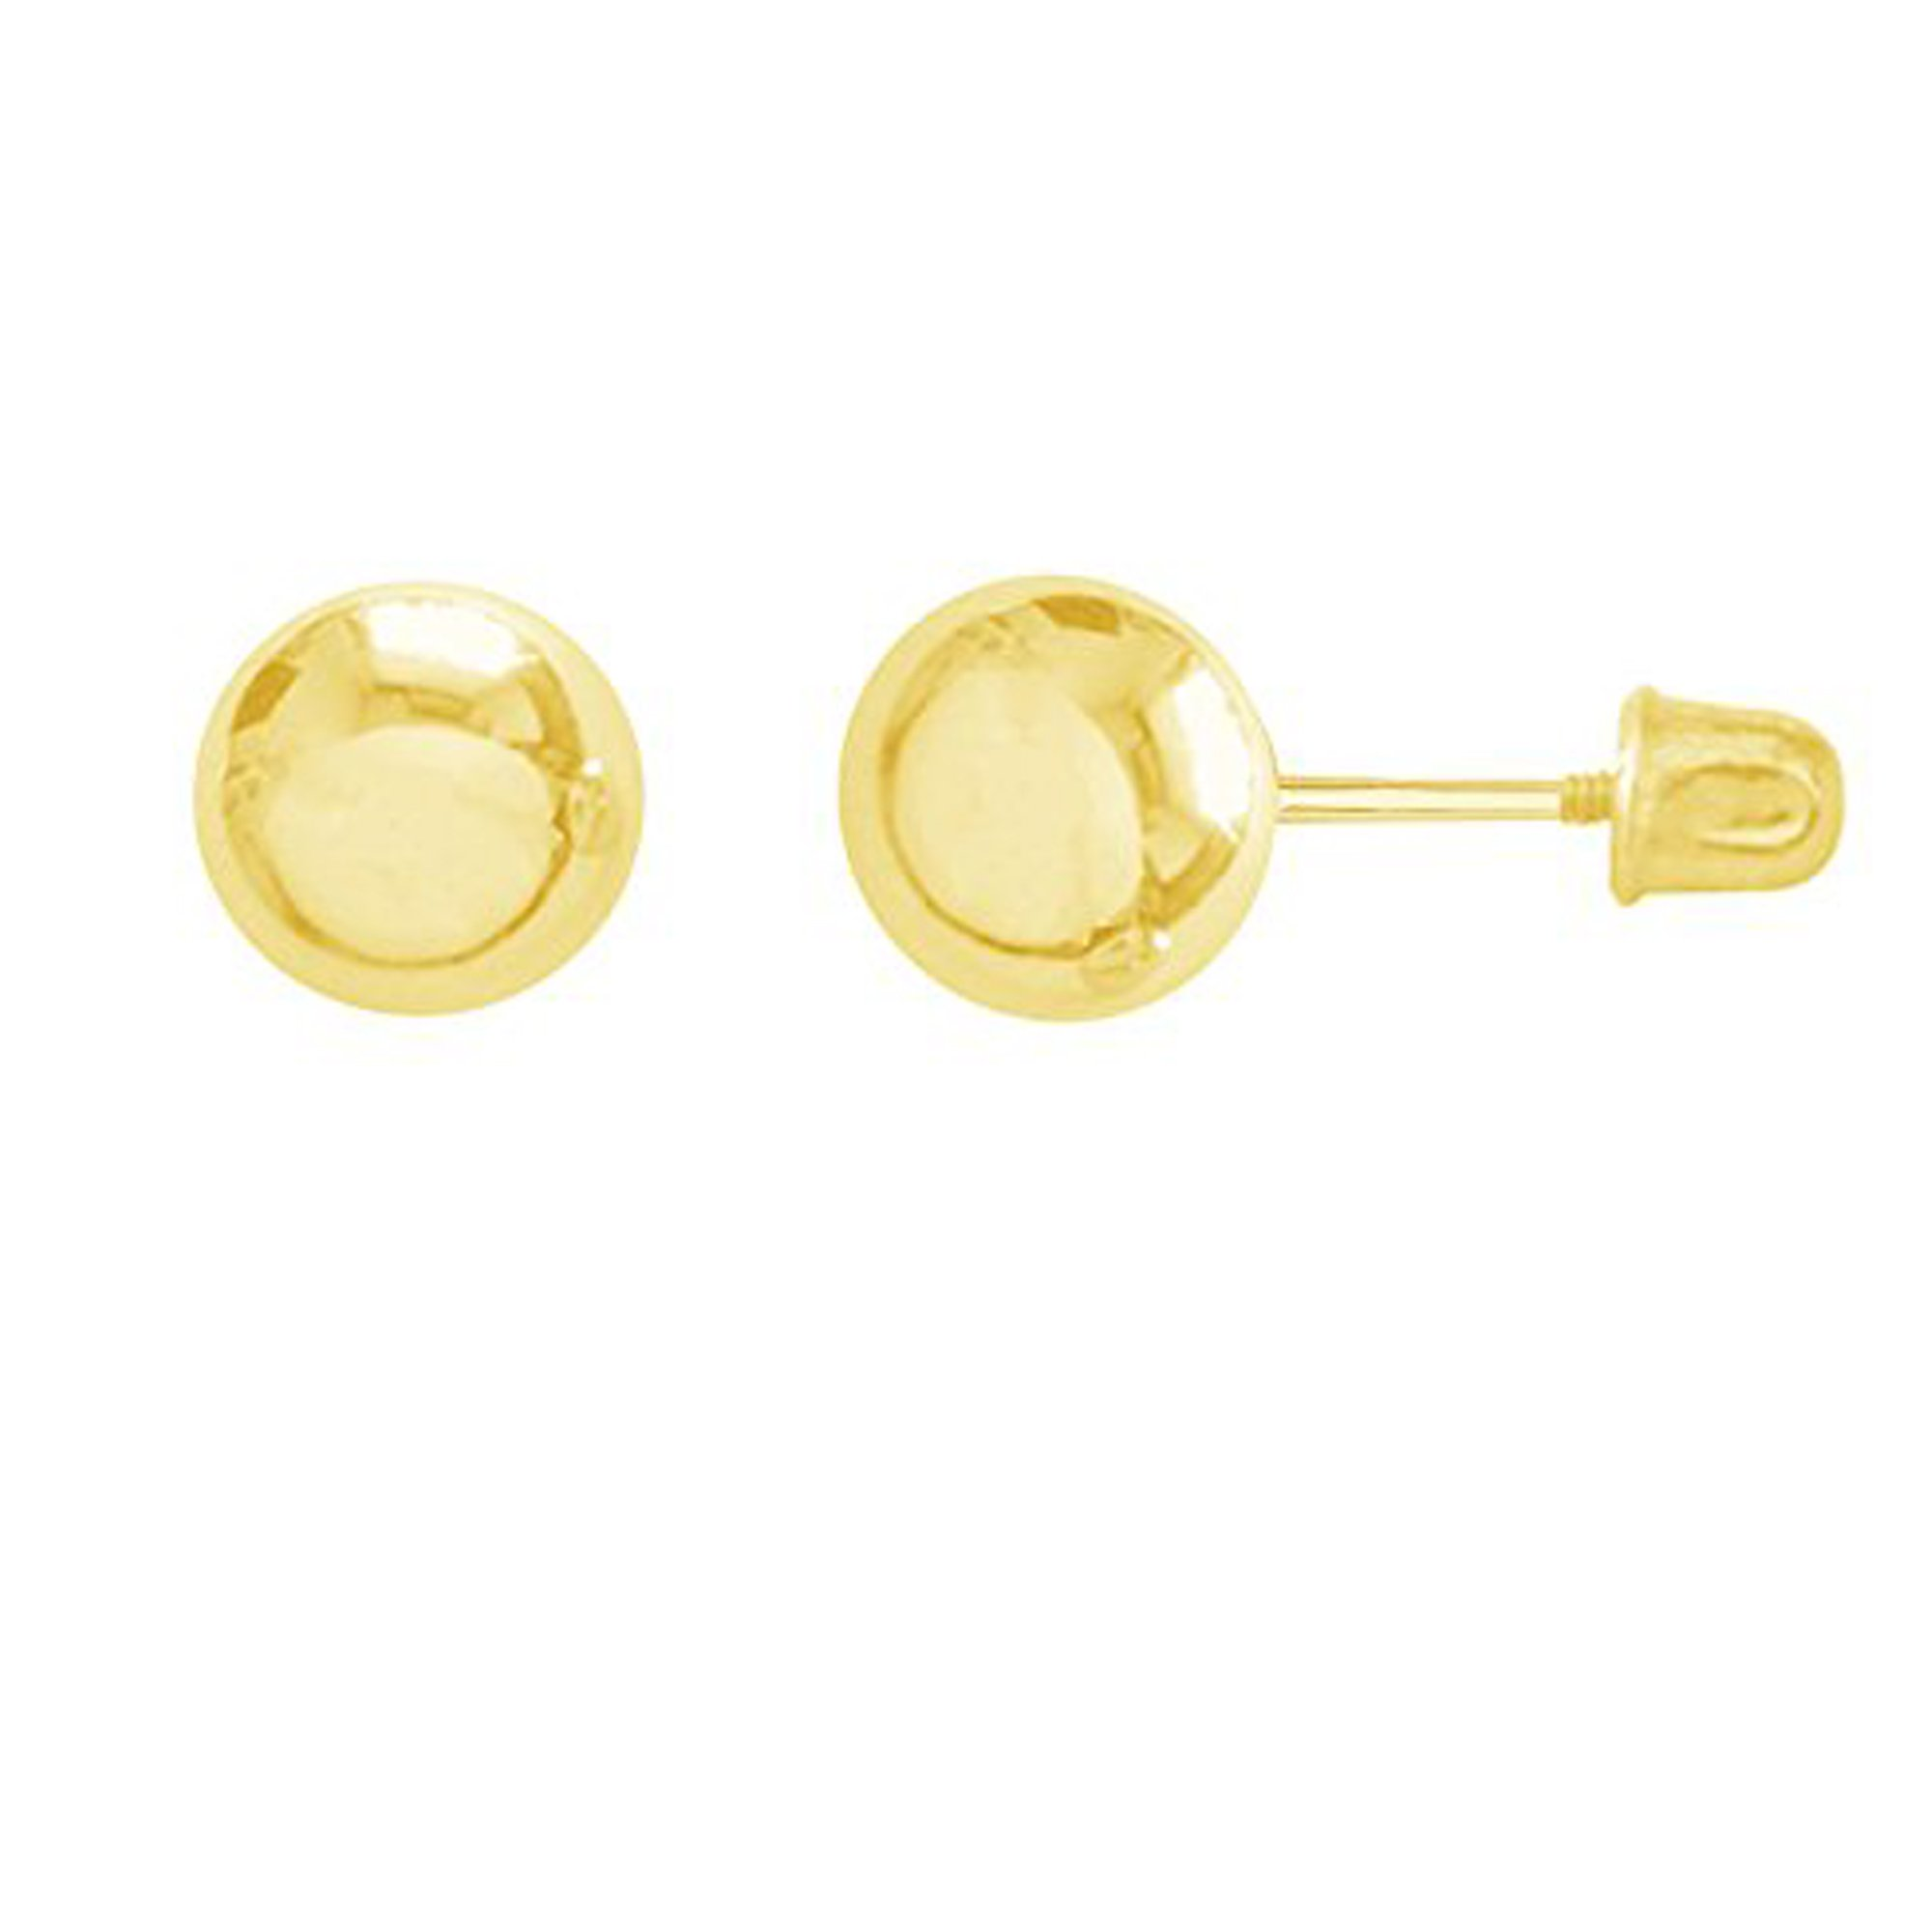 14k Yellow Gold Ball Stud Post Earrings 3,4,5,6,7mm with Screw Backs (7 Millimeters)